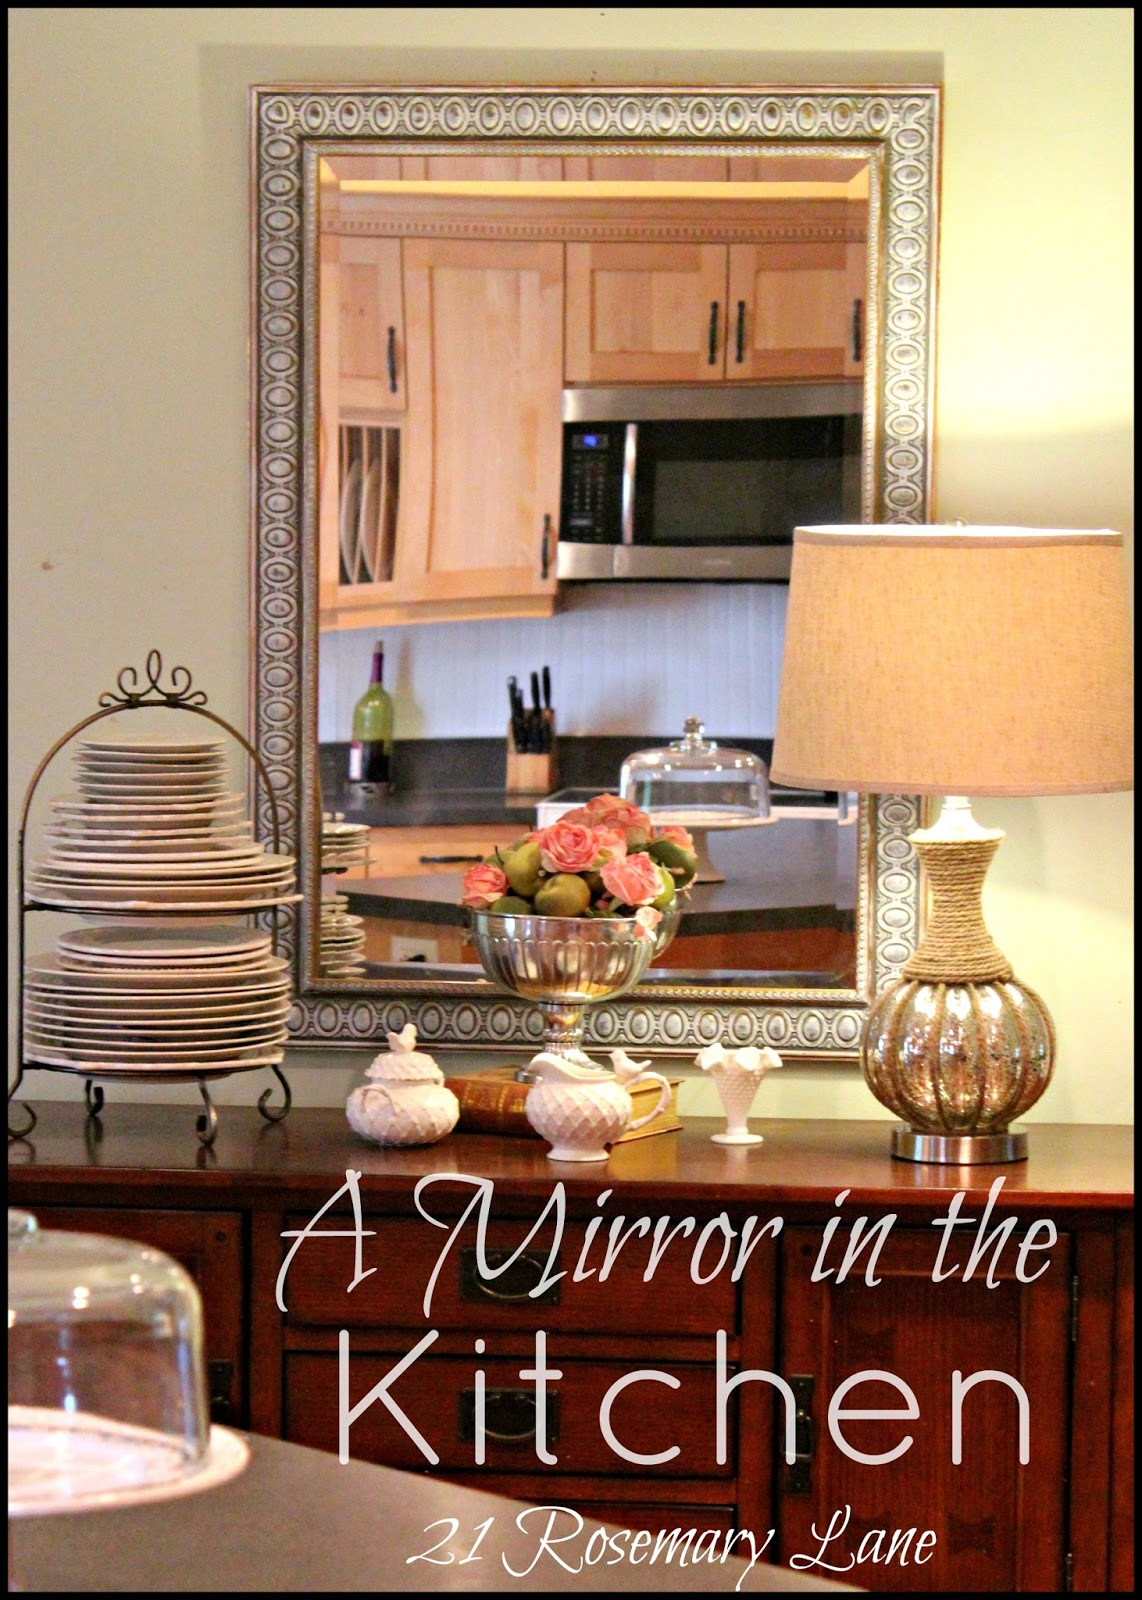 21 Rosemary Lane: Hanging a Mirror in the Kitchen